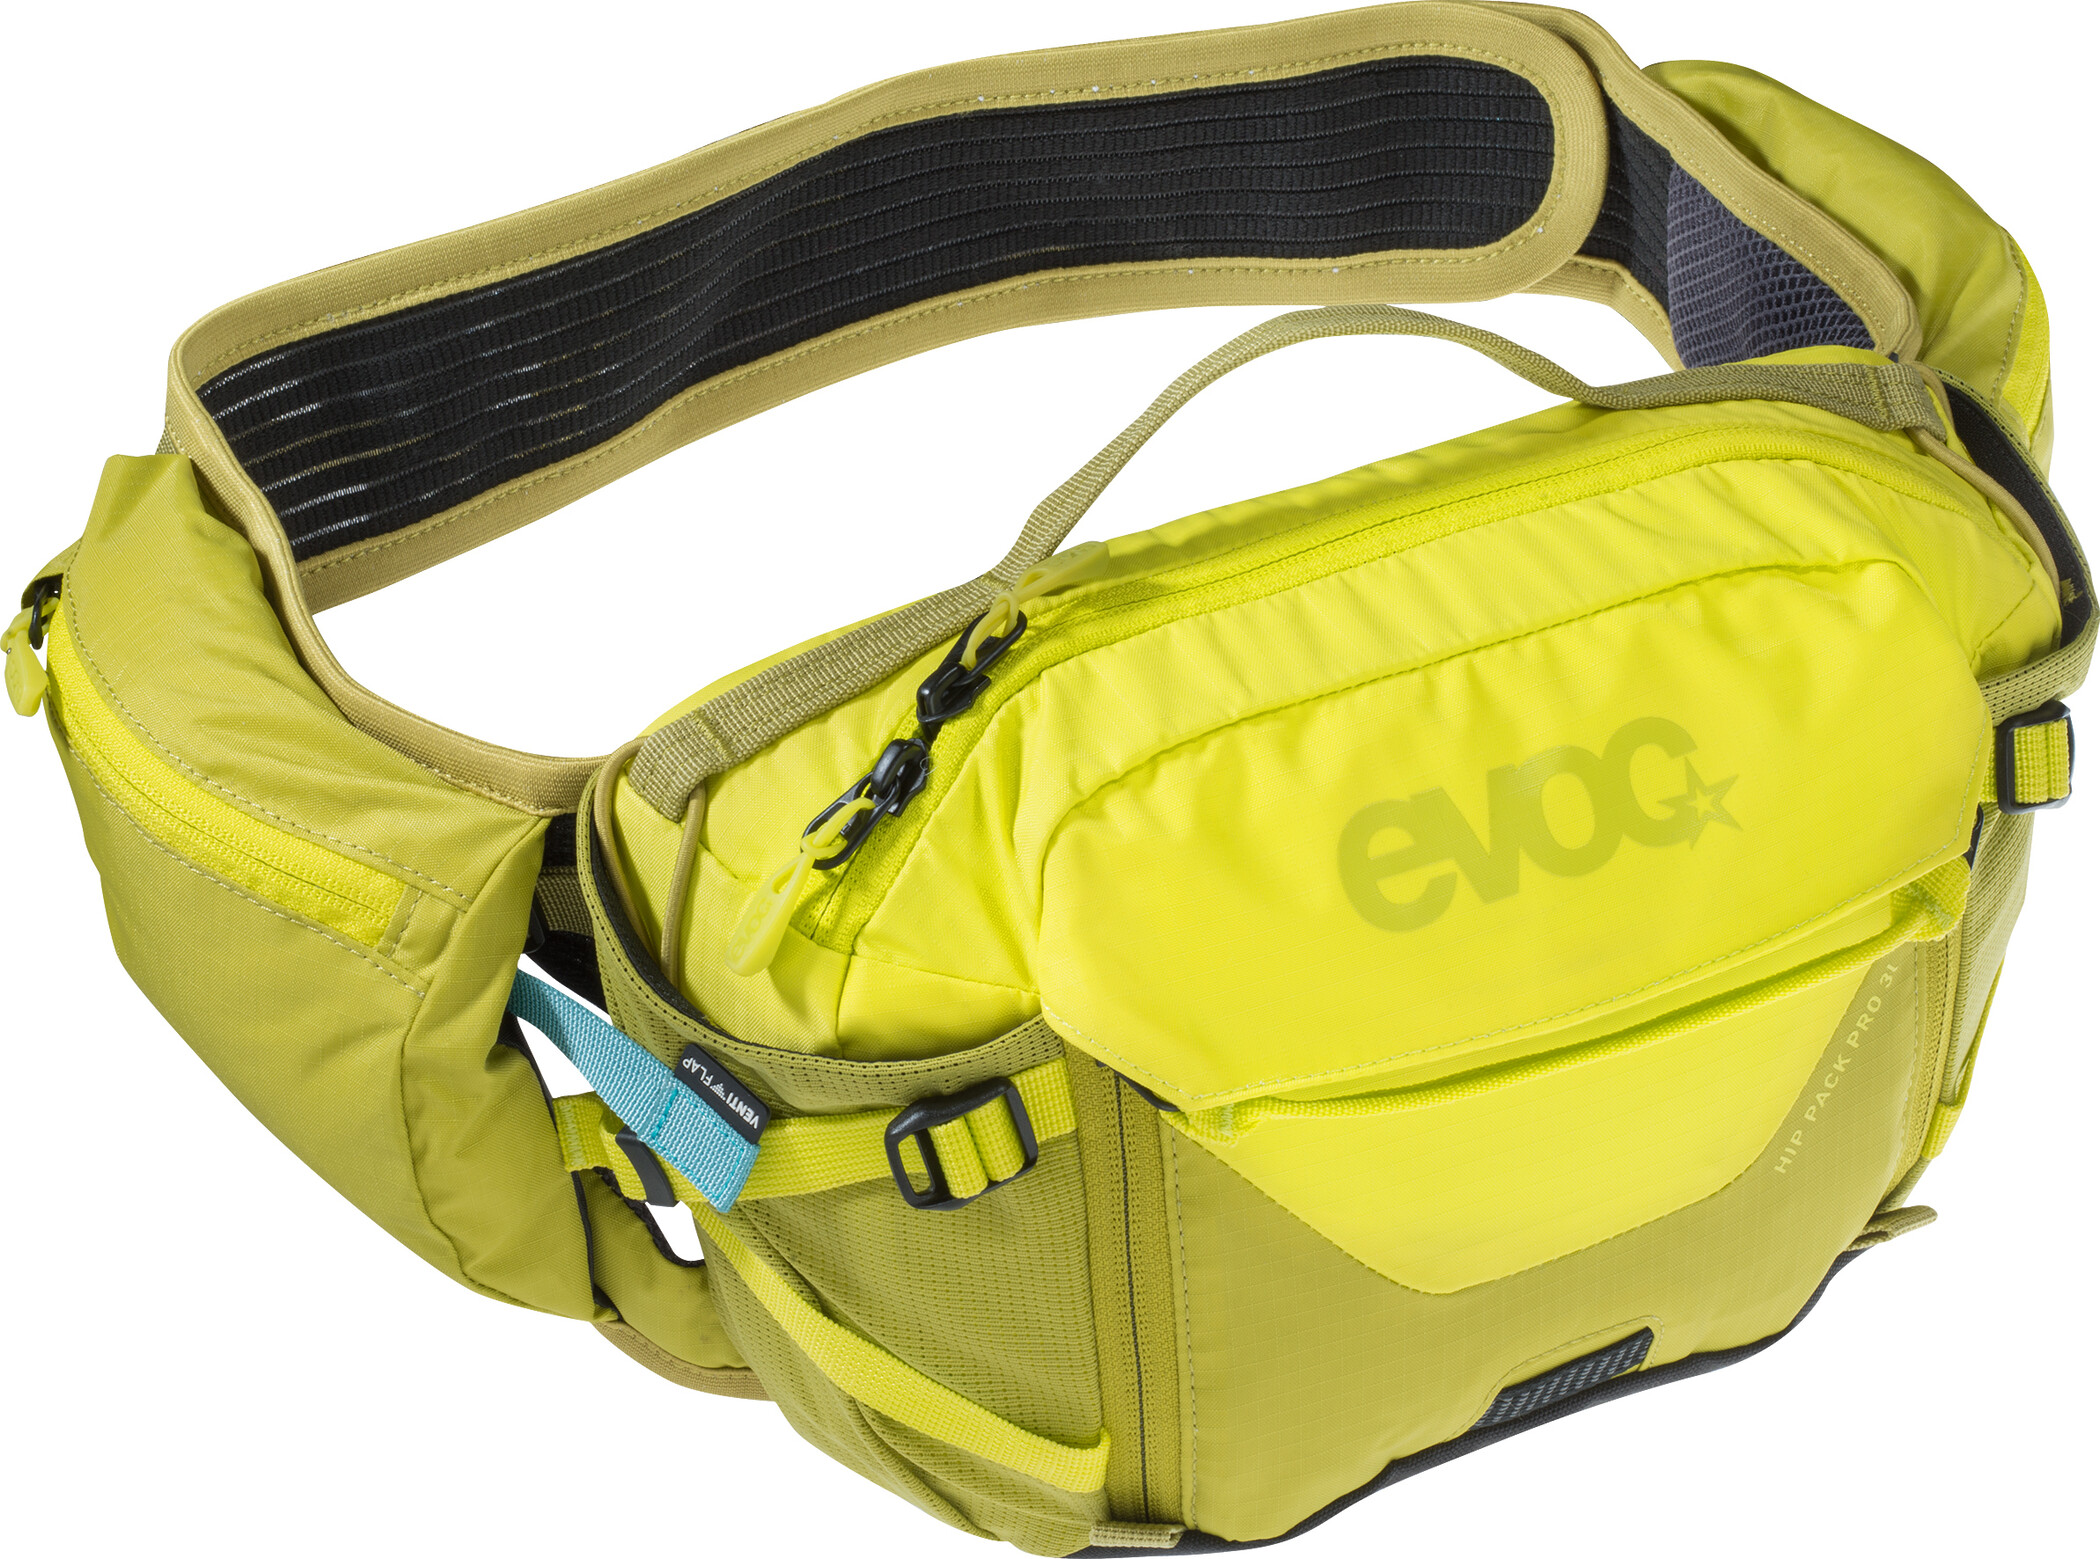 EVOC Hip Pack Pro medium, sulphur/moss green | Waist bags